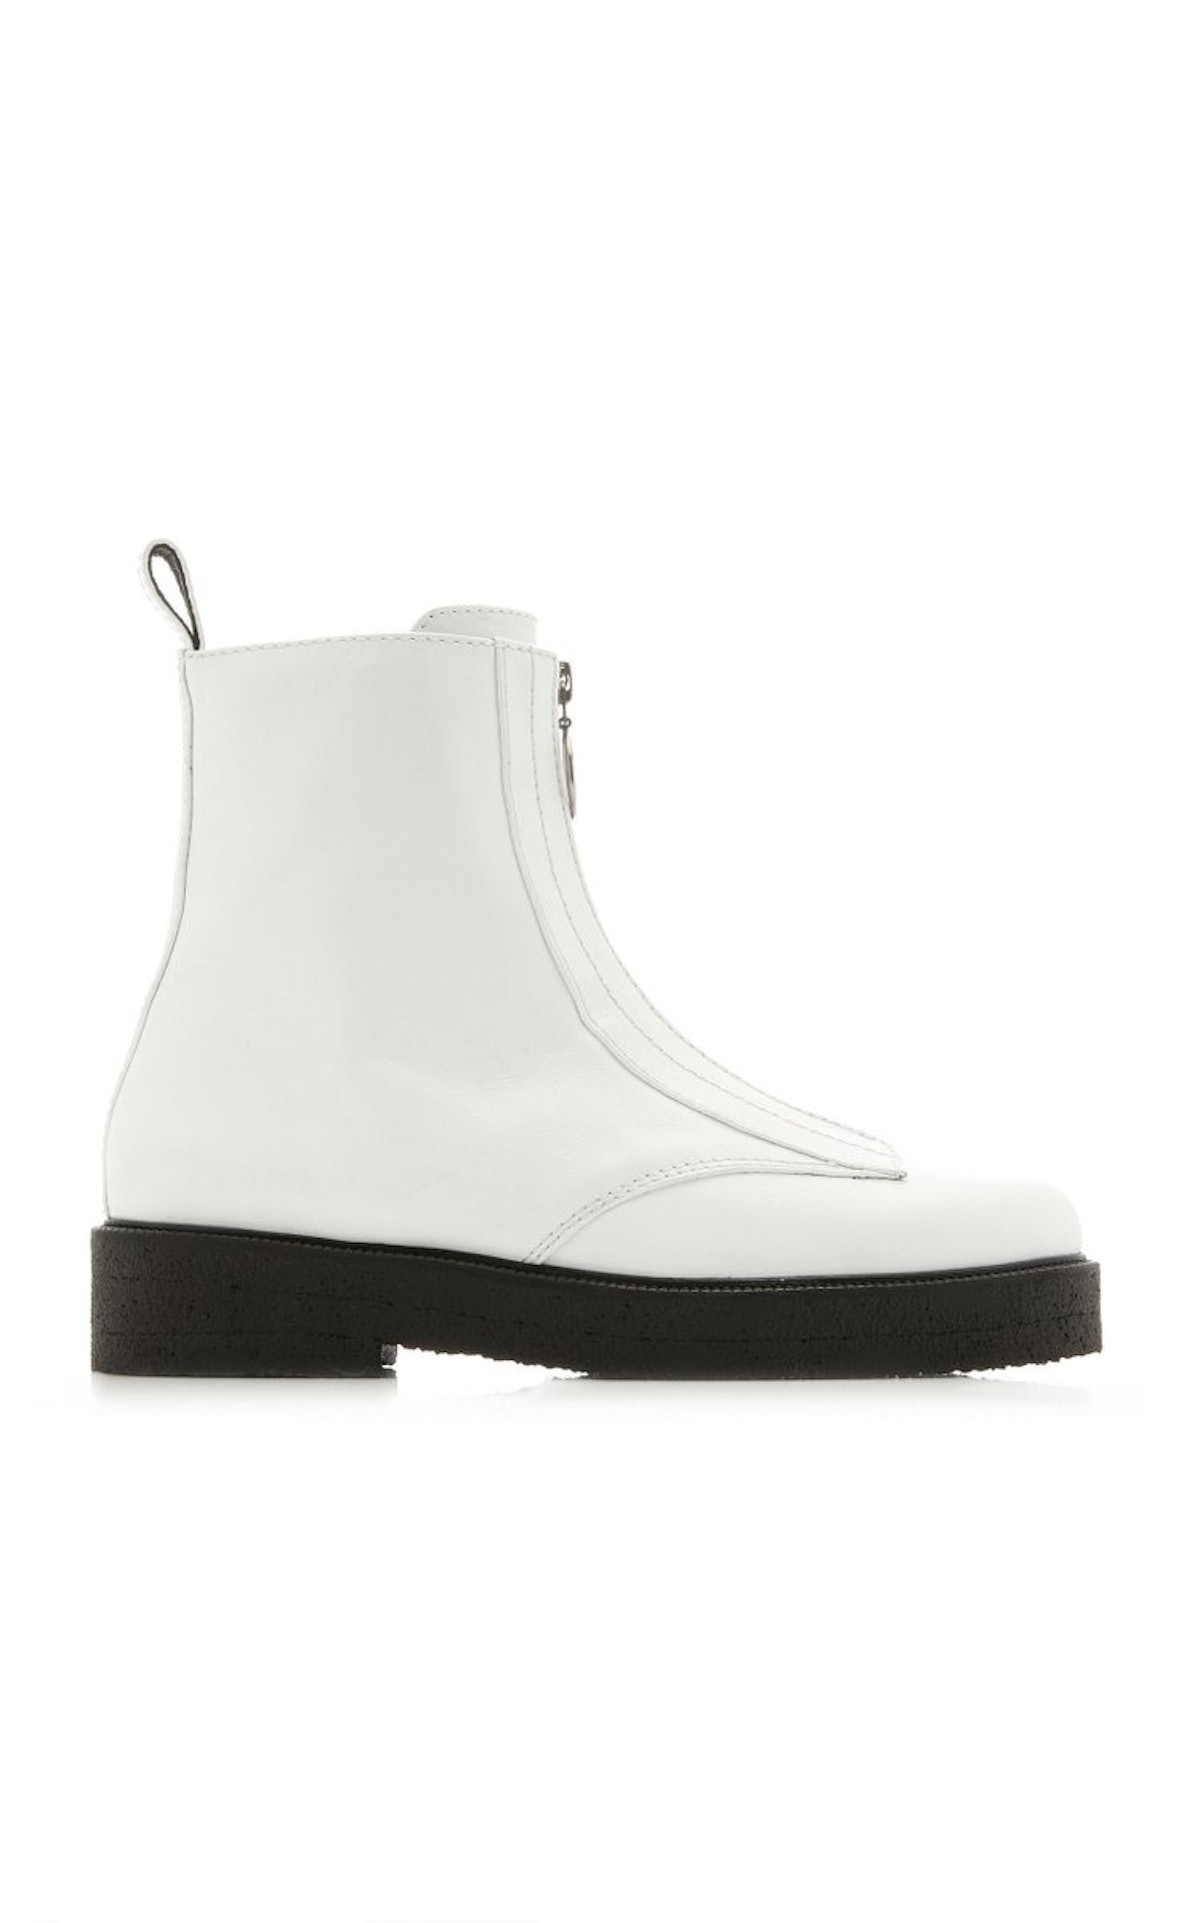 White Palermo Zipped Leather Ankle Boots from STAUD, available to shop on Moda Operandi.